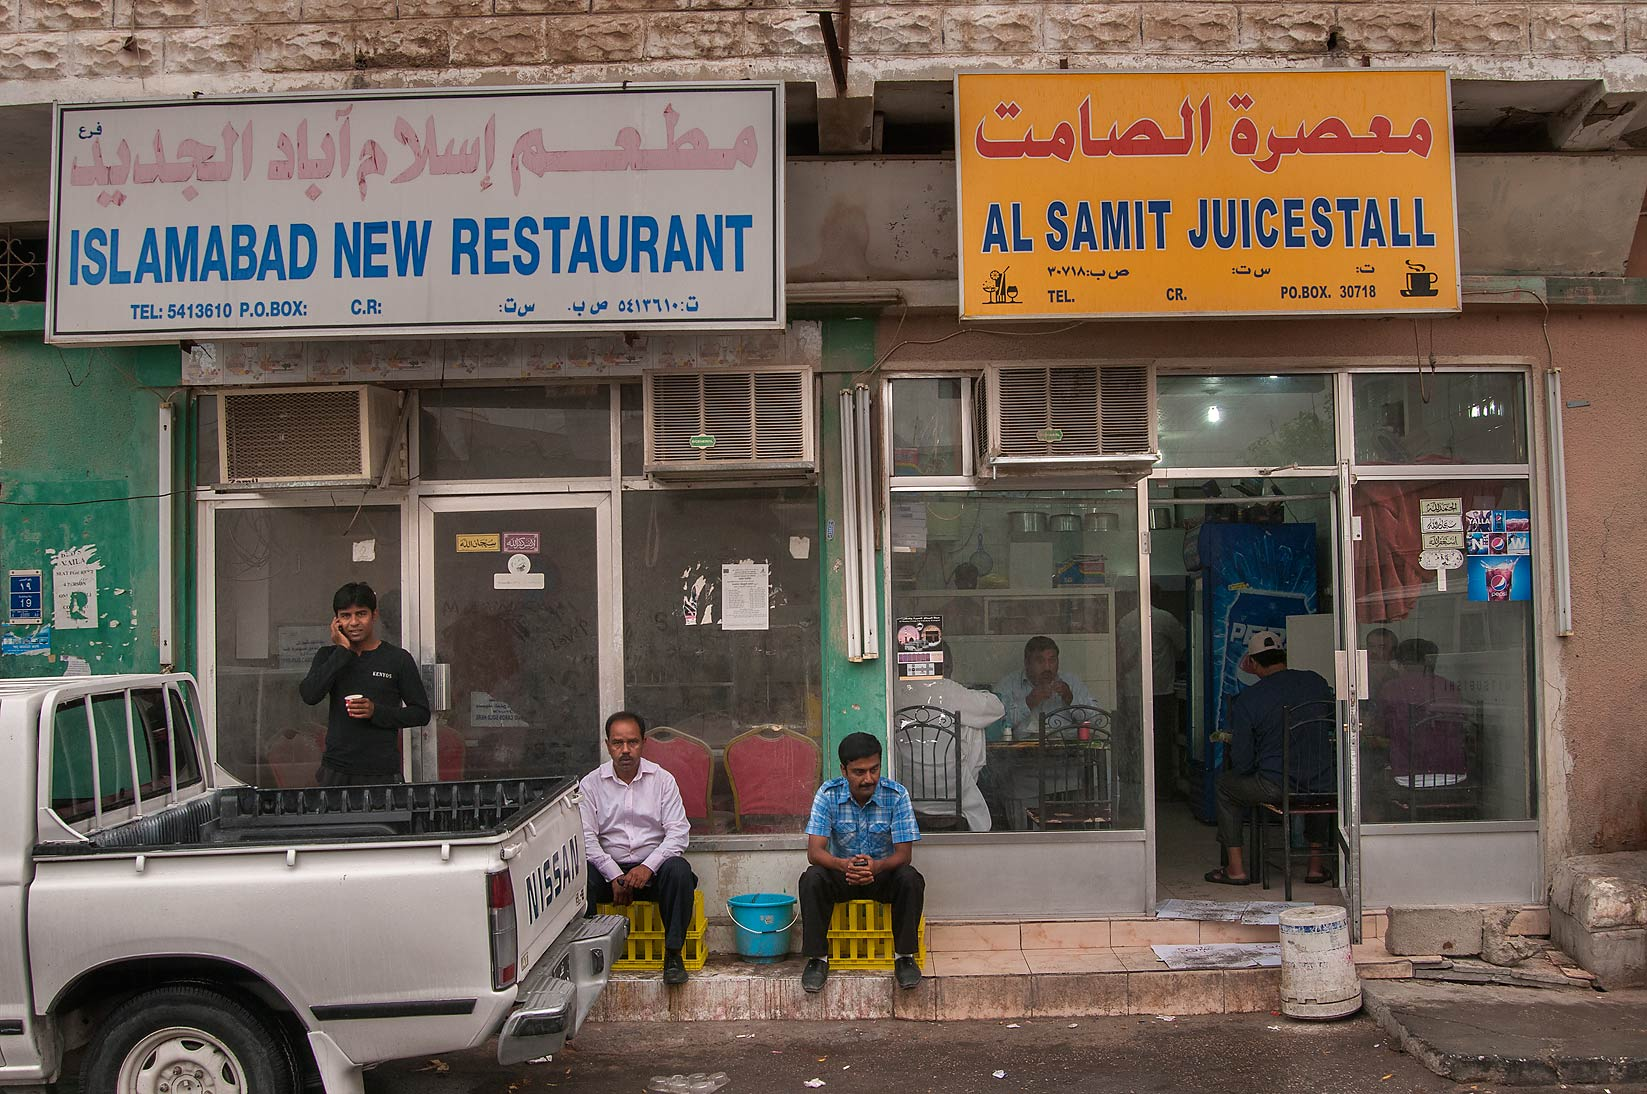 Taking breakfast at Al Samit Juice Stall on Al Maymoun St., Musheirib area. Doha, Qatar